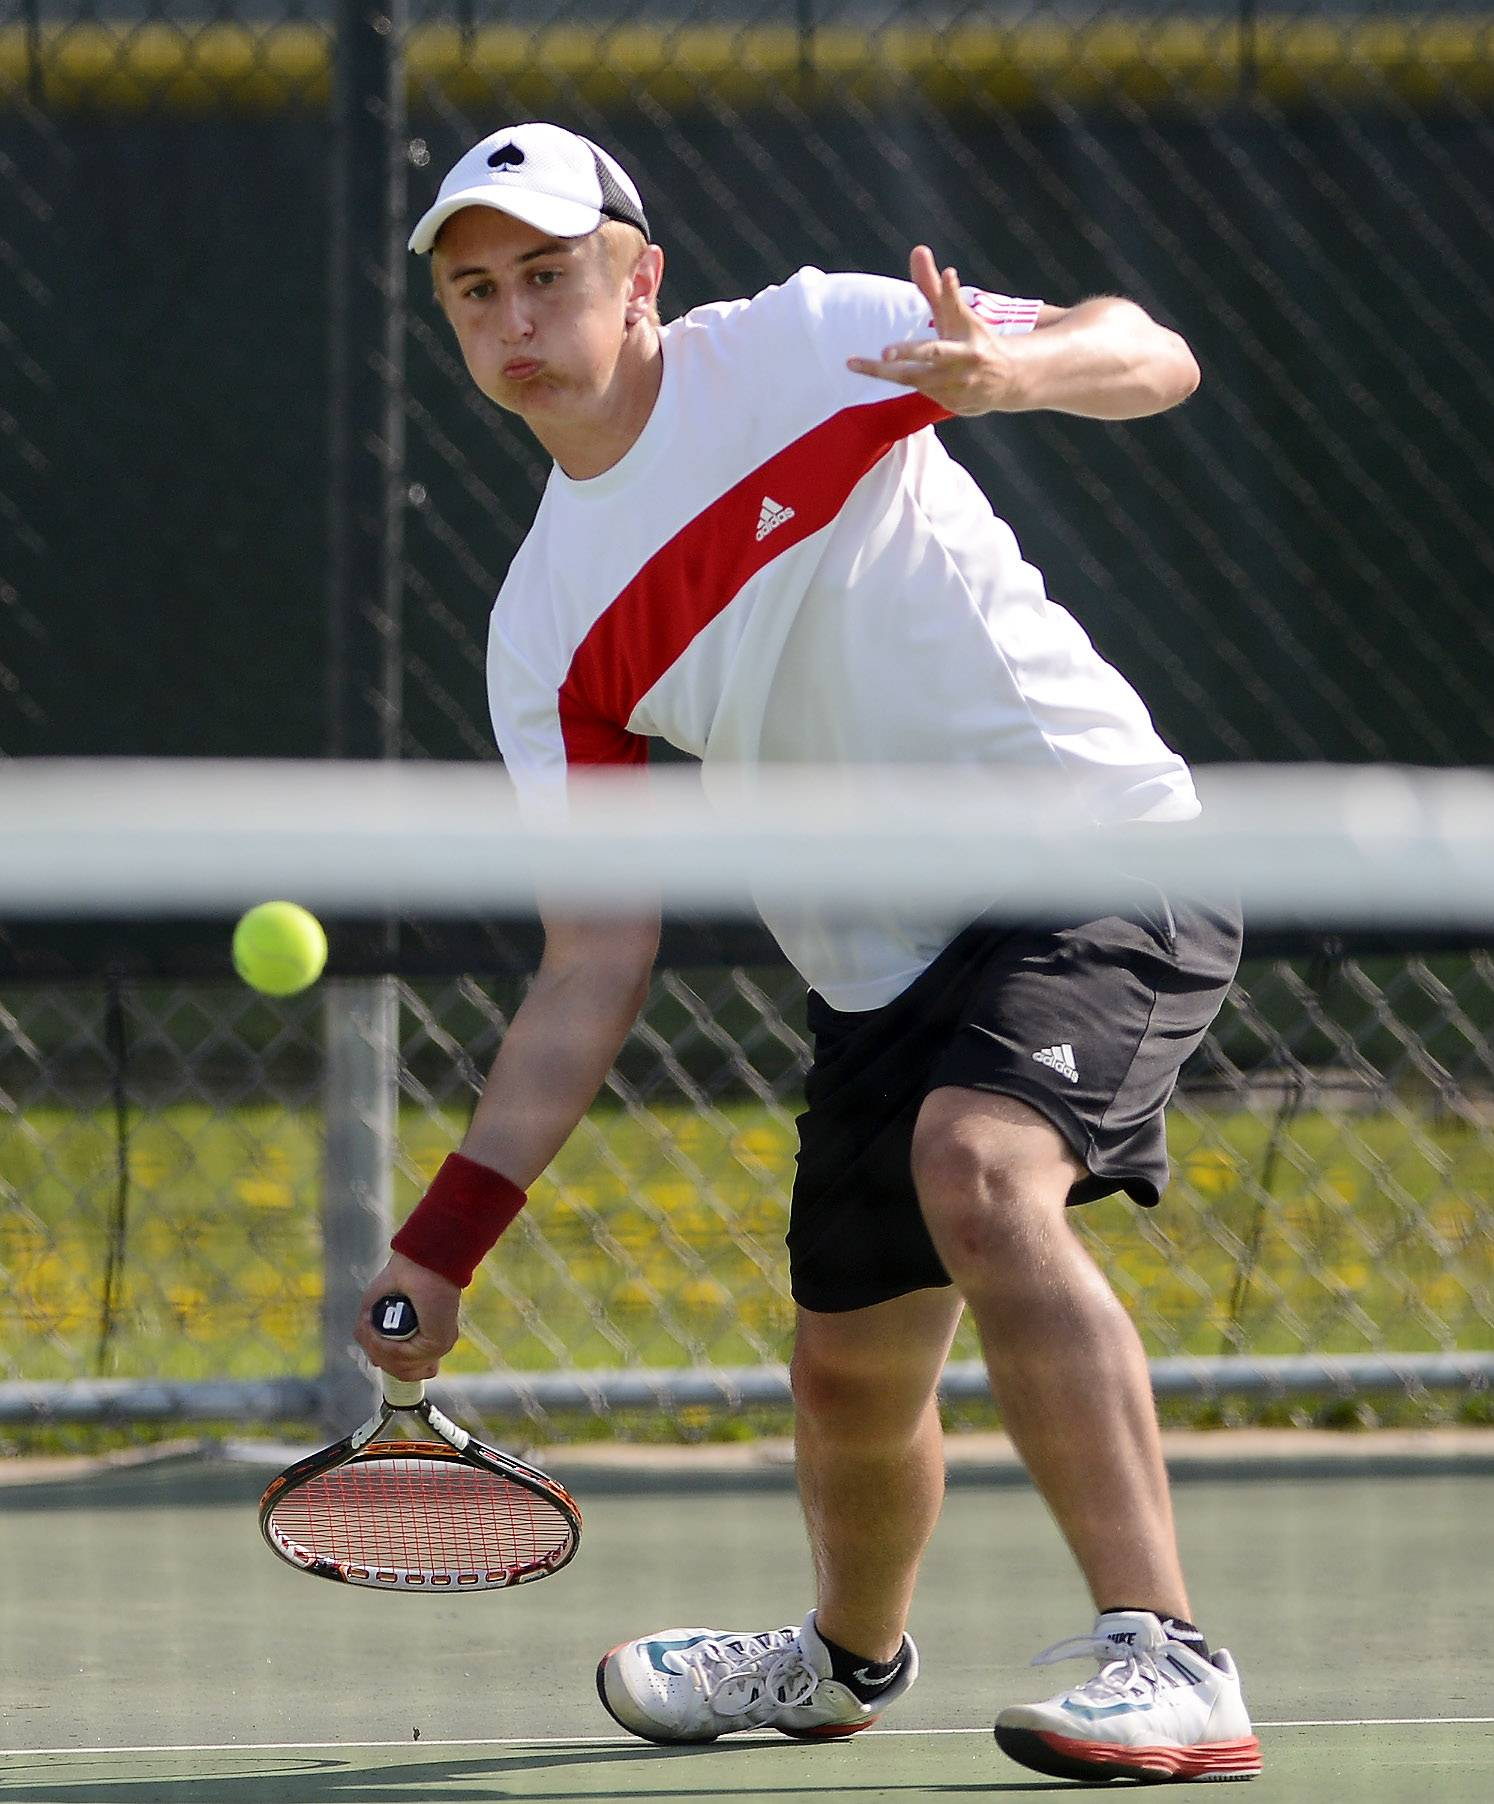 Tim Murat of Batavia reaches for a half volley in his #1 singles match against Matt Ernst of St. Charles North during tennis action at Batavia Thursday.